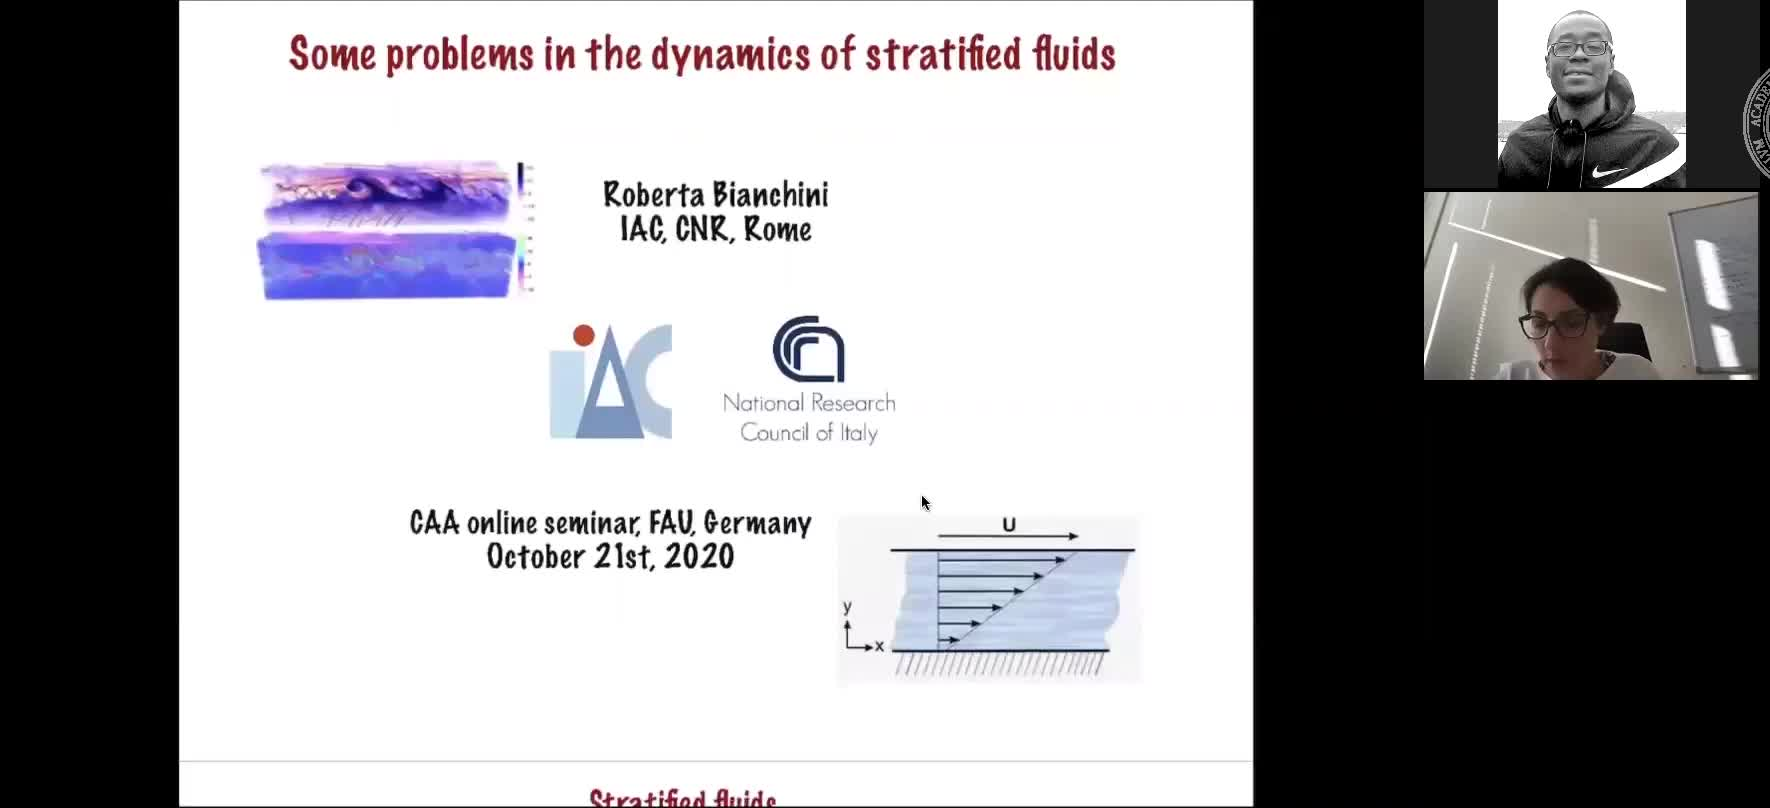 Some problems in the dynamics of stratified fluids preview image